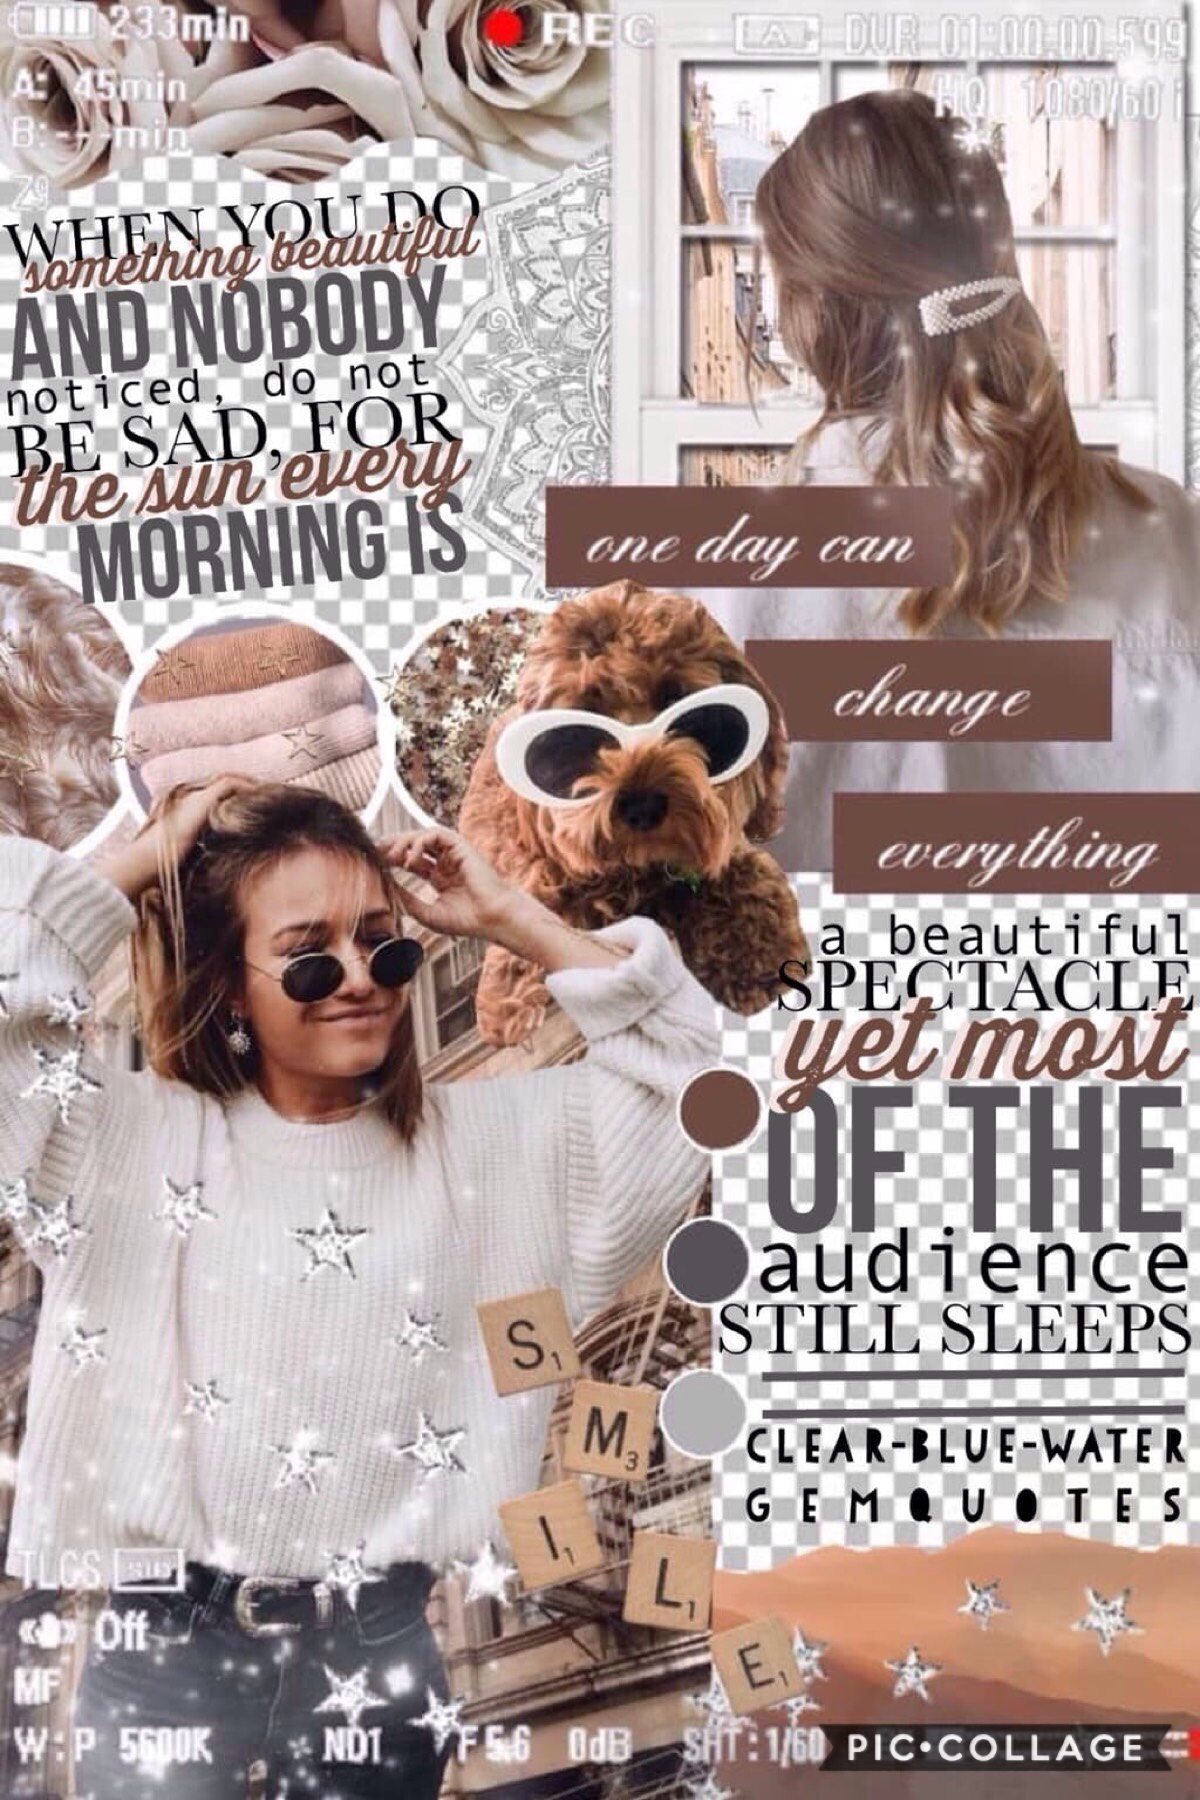 ☕️T A P☕️ Collab with the fabulous GemQuotes, I did the bg and she did the flawless text. QOTD: What is your favorite coffee place? AOTD: Starbucks but I actually hate coffee so I just get the non-coffee drinks